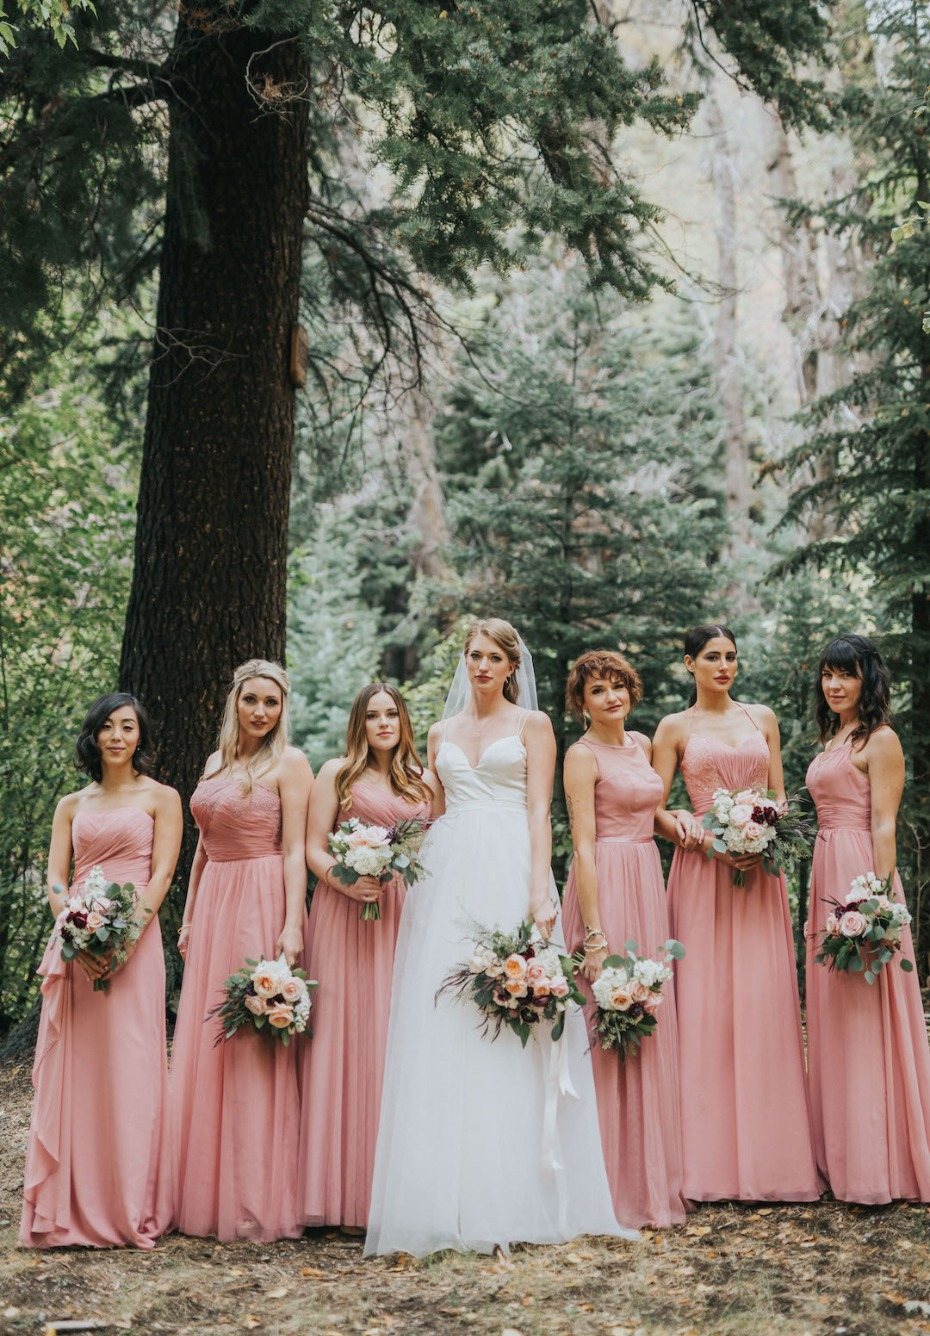 bride and her bridesmaids in matching pink